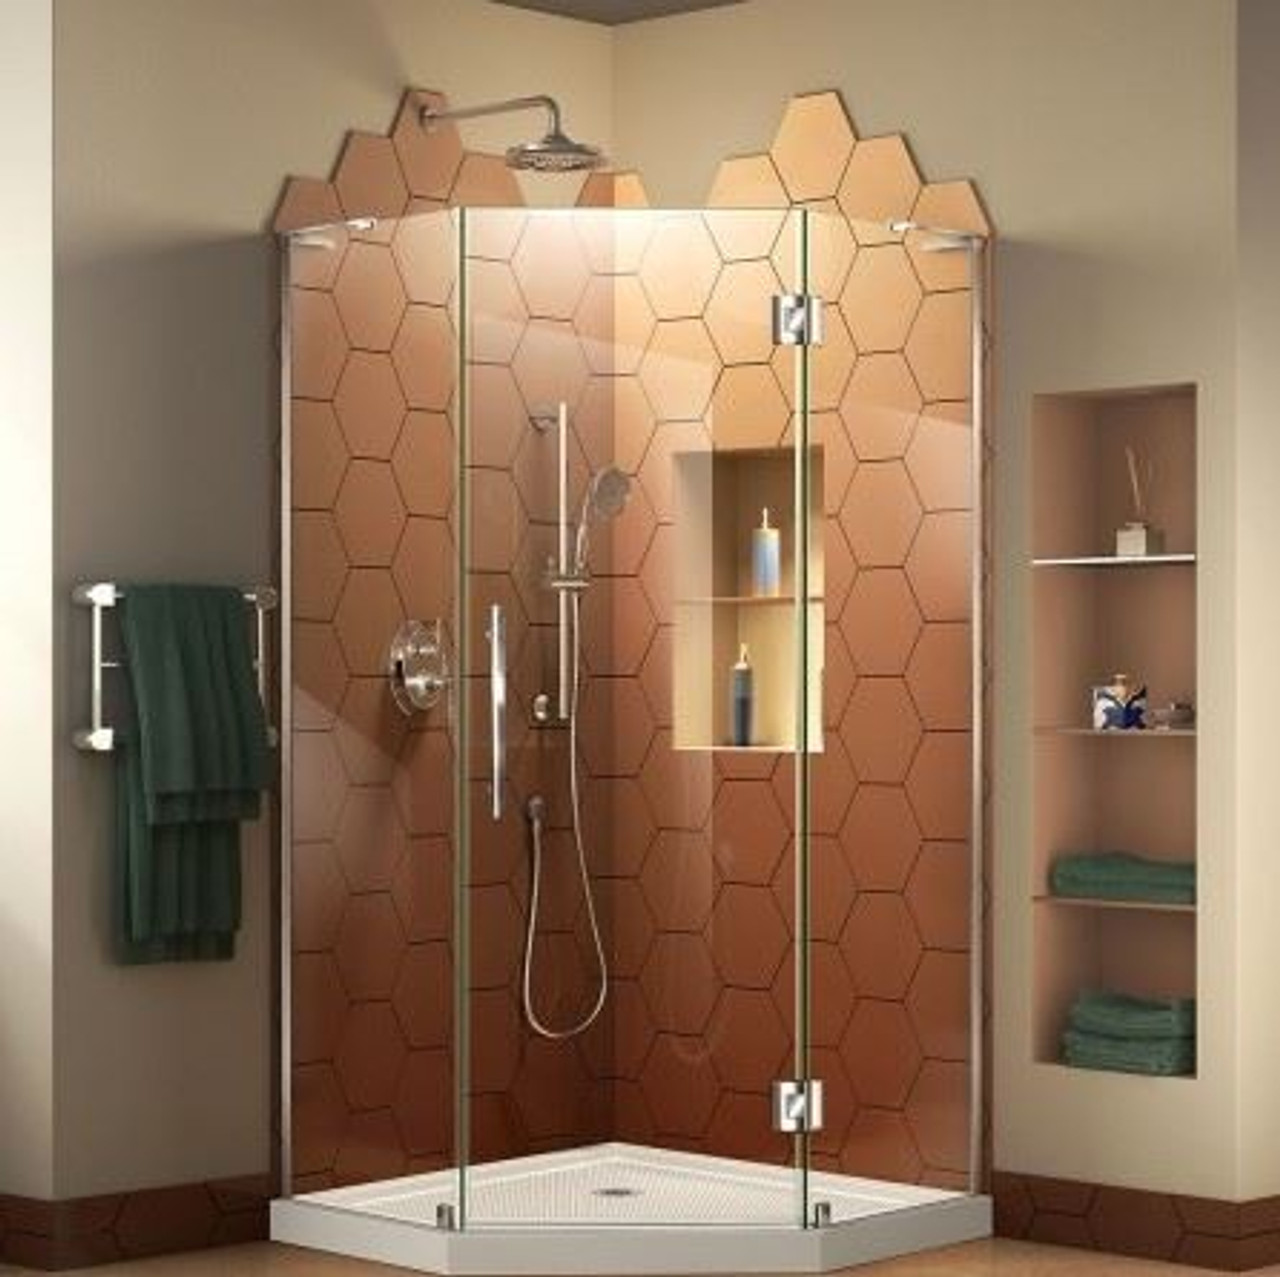 Neoangle Shower Base Glass Enclosure Chrome 36 X 36